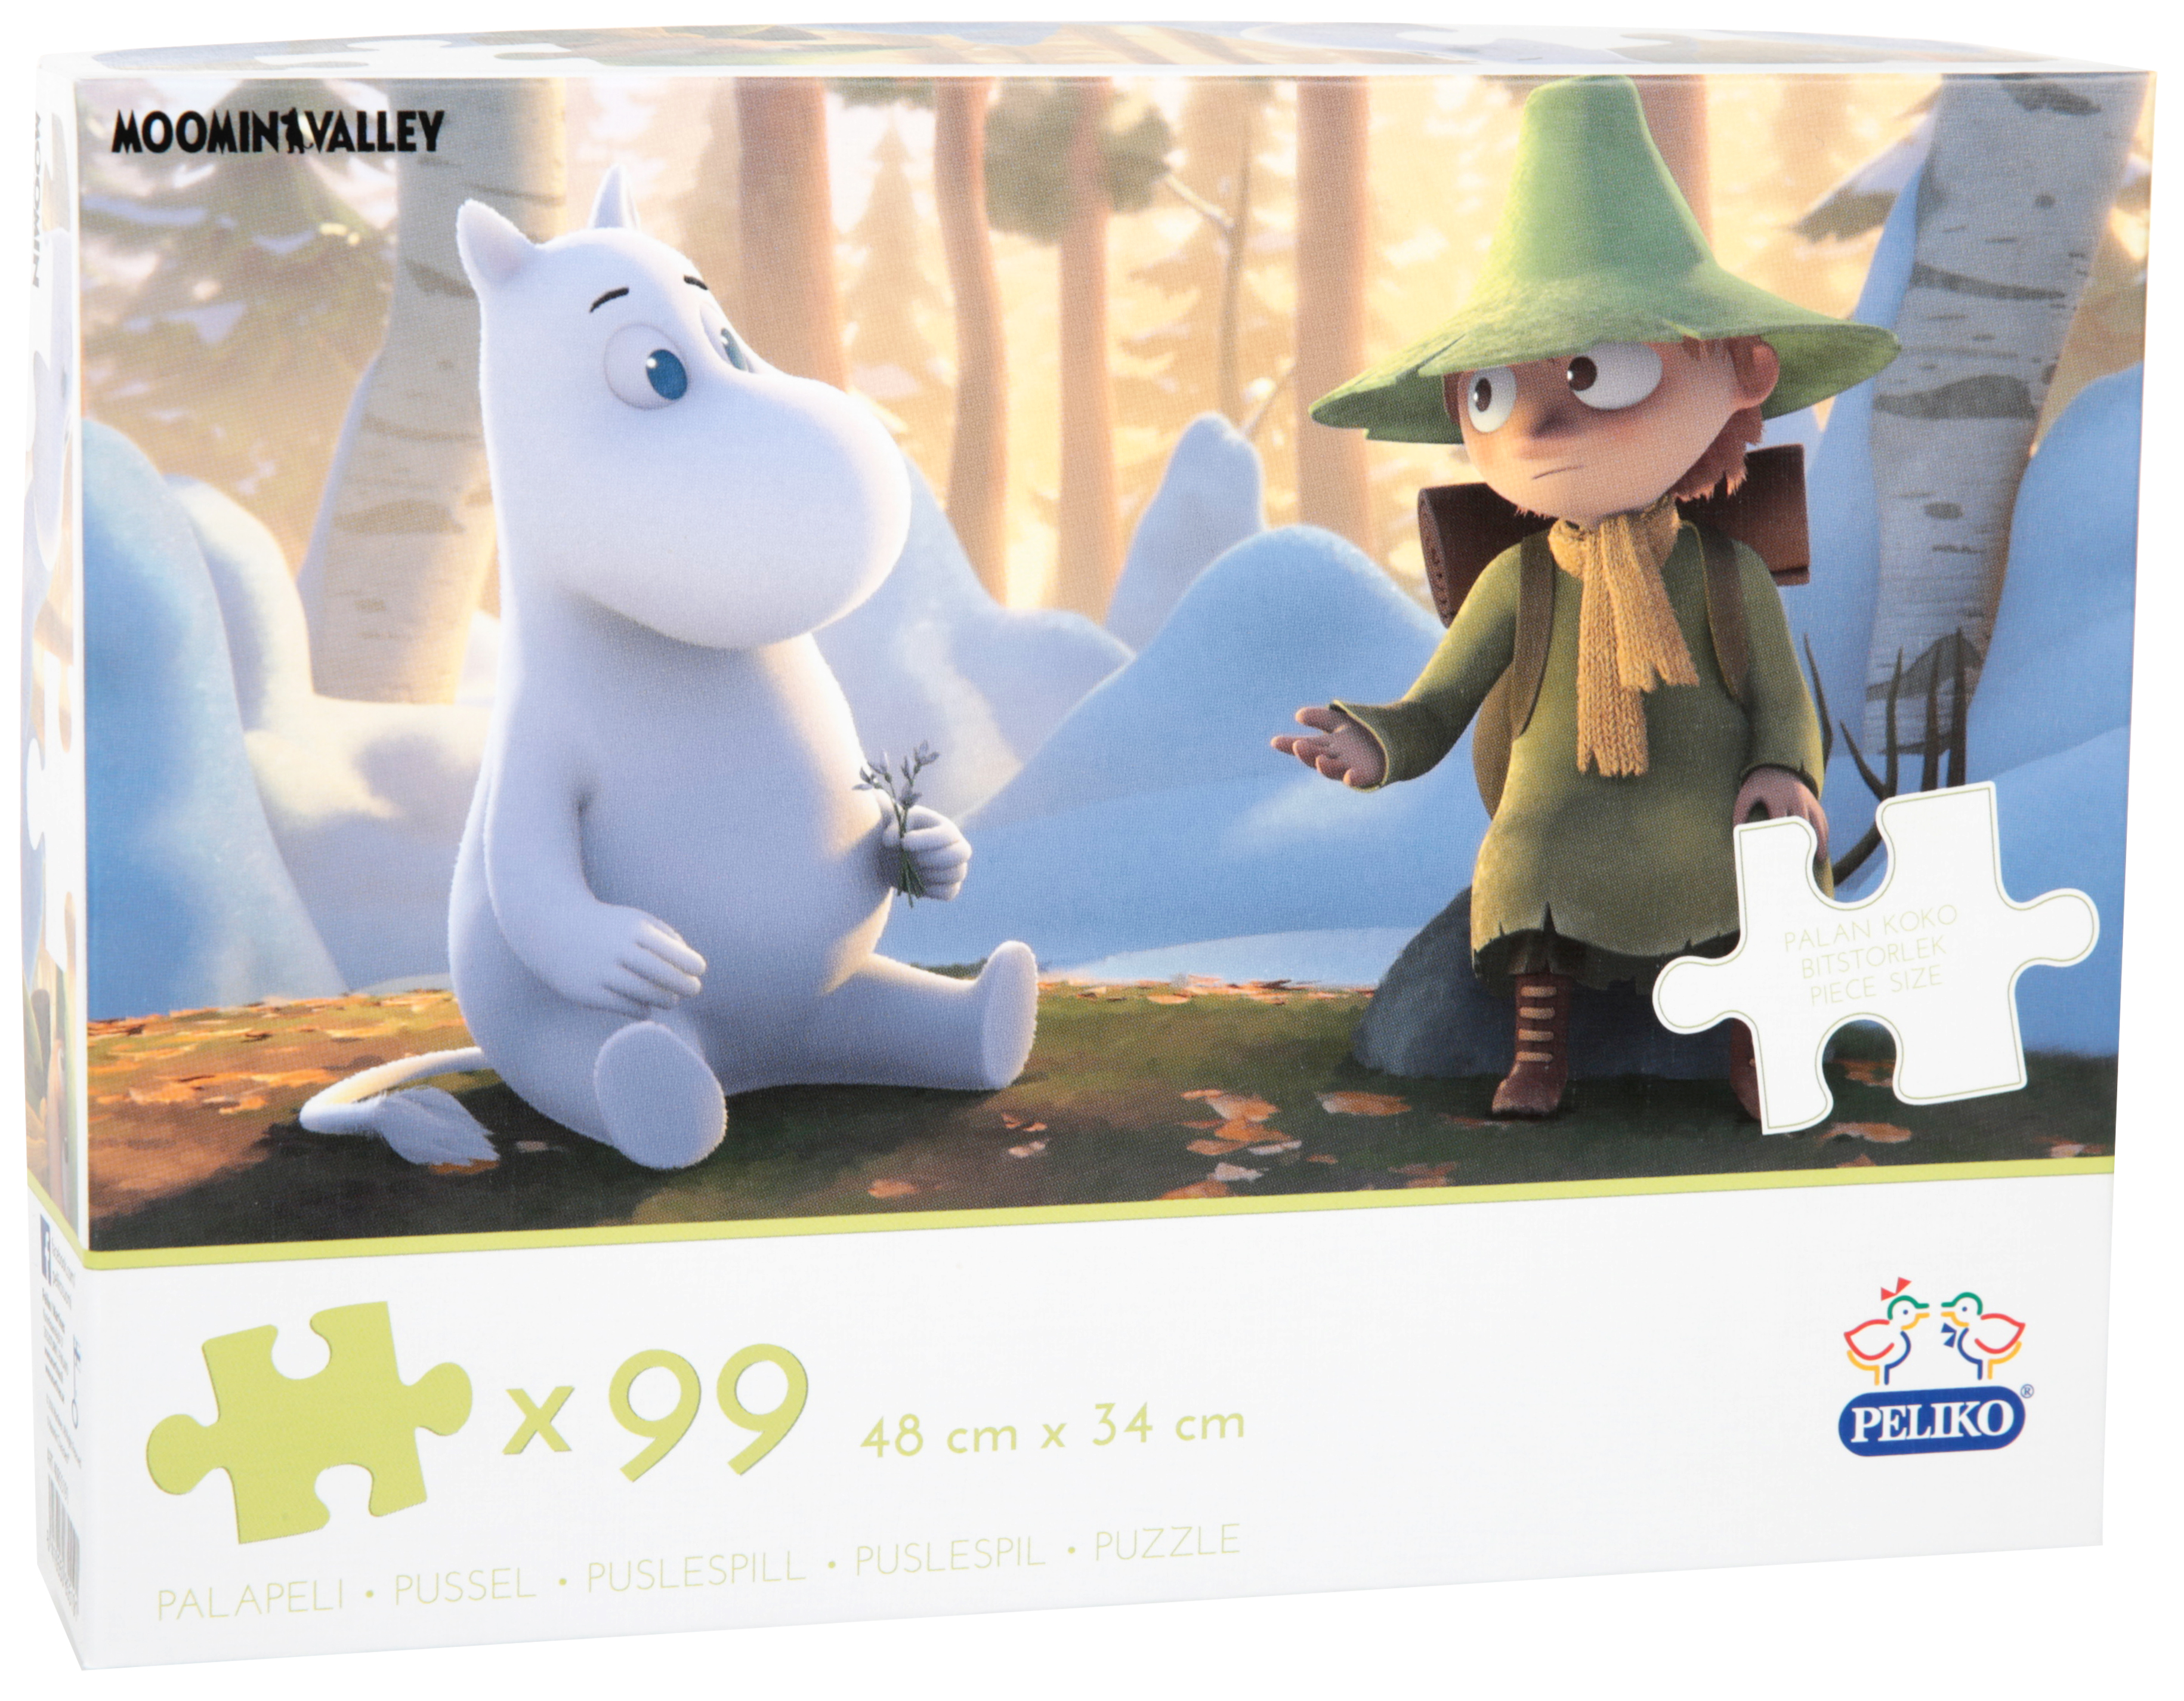 Martinex Moominvalley Jigzaw Puzzle 99 Pieces